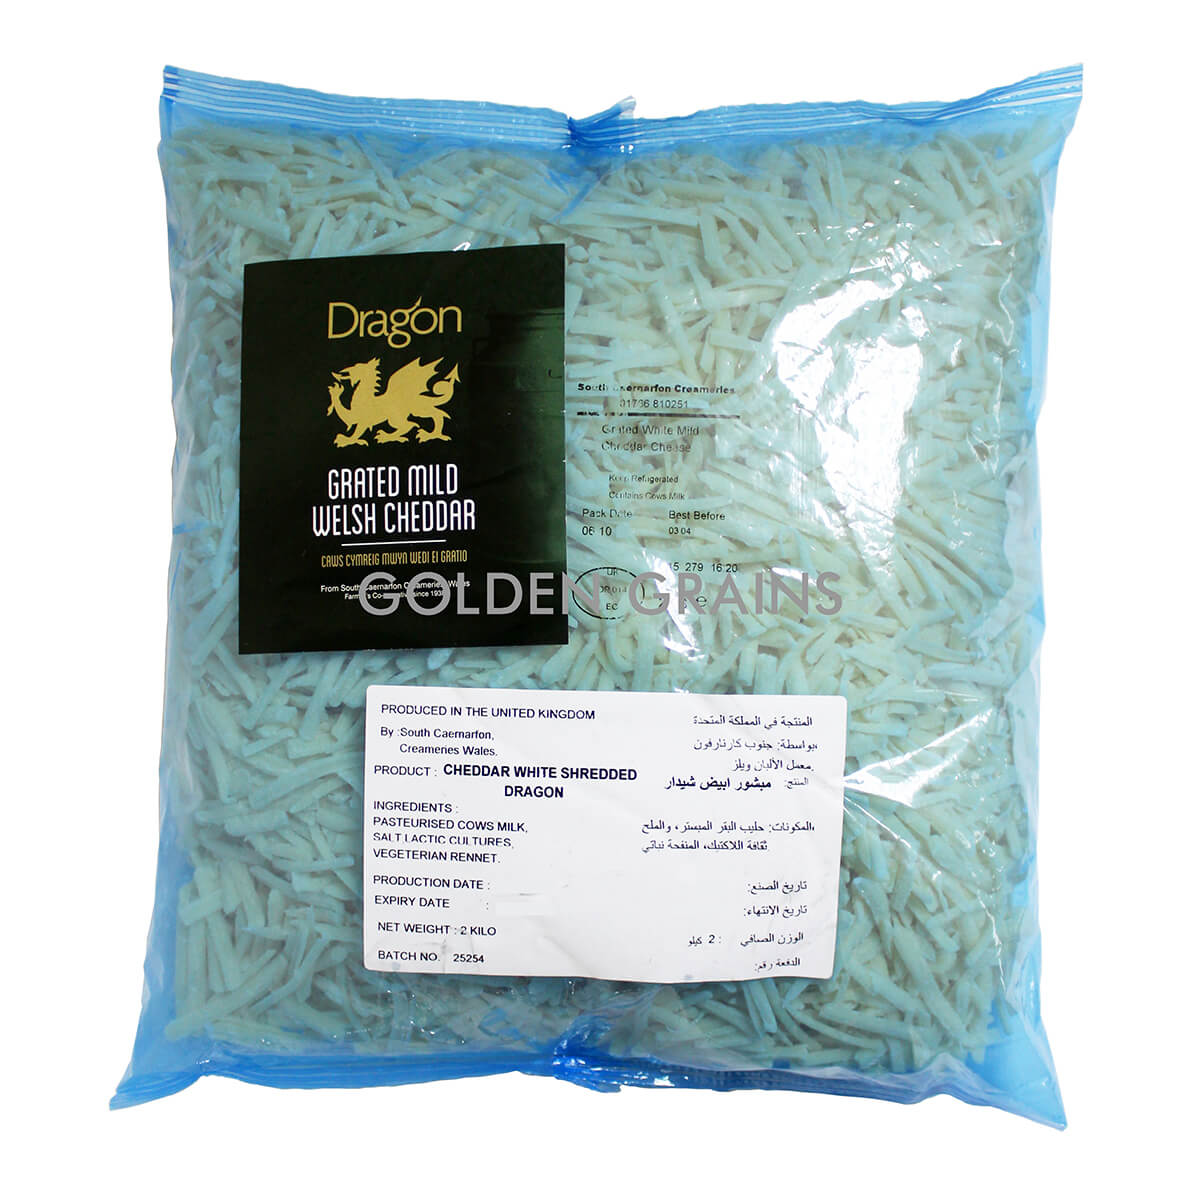 Golden Grains Dubai Export - Dragon - Grated Mild Welsh Cheddar - Front.jpg